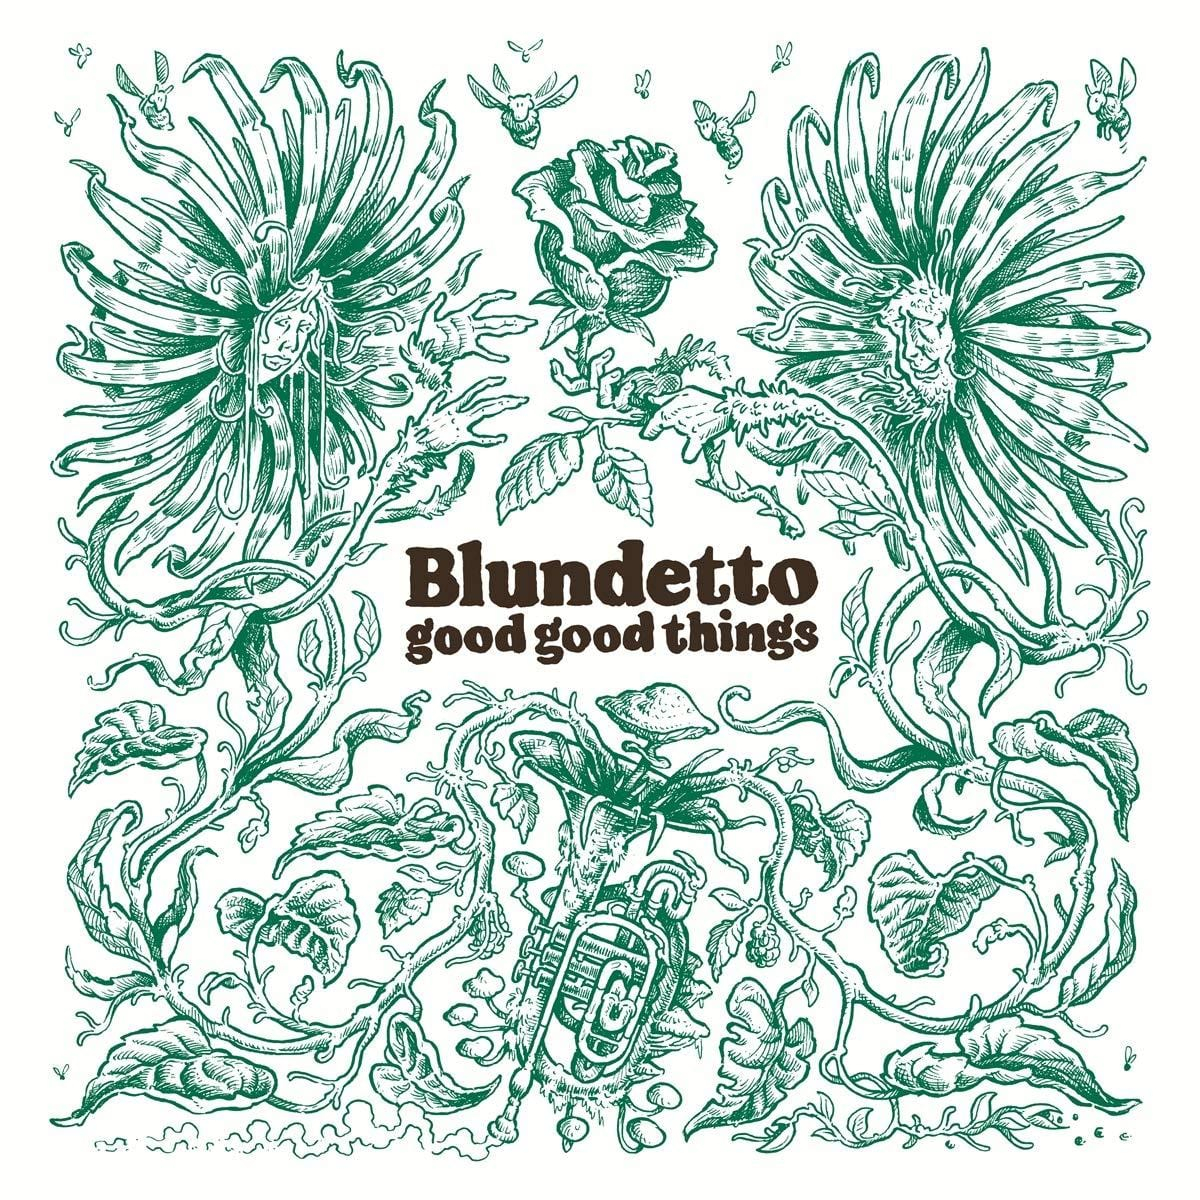 Blundetto - Good Good Things [2LP] (import) - Urban Vinyl | Records, Headphones, and more.